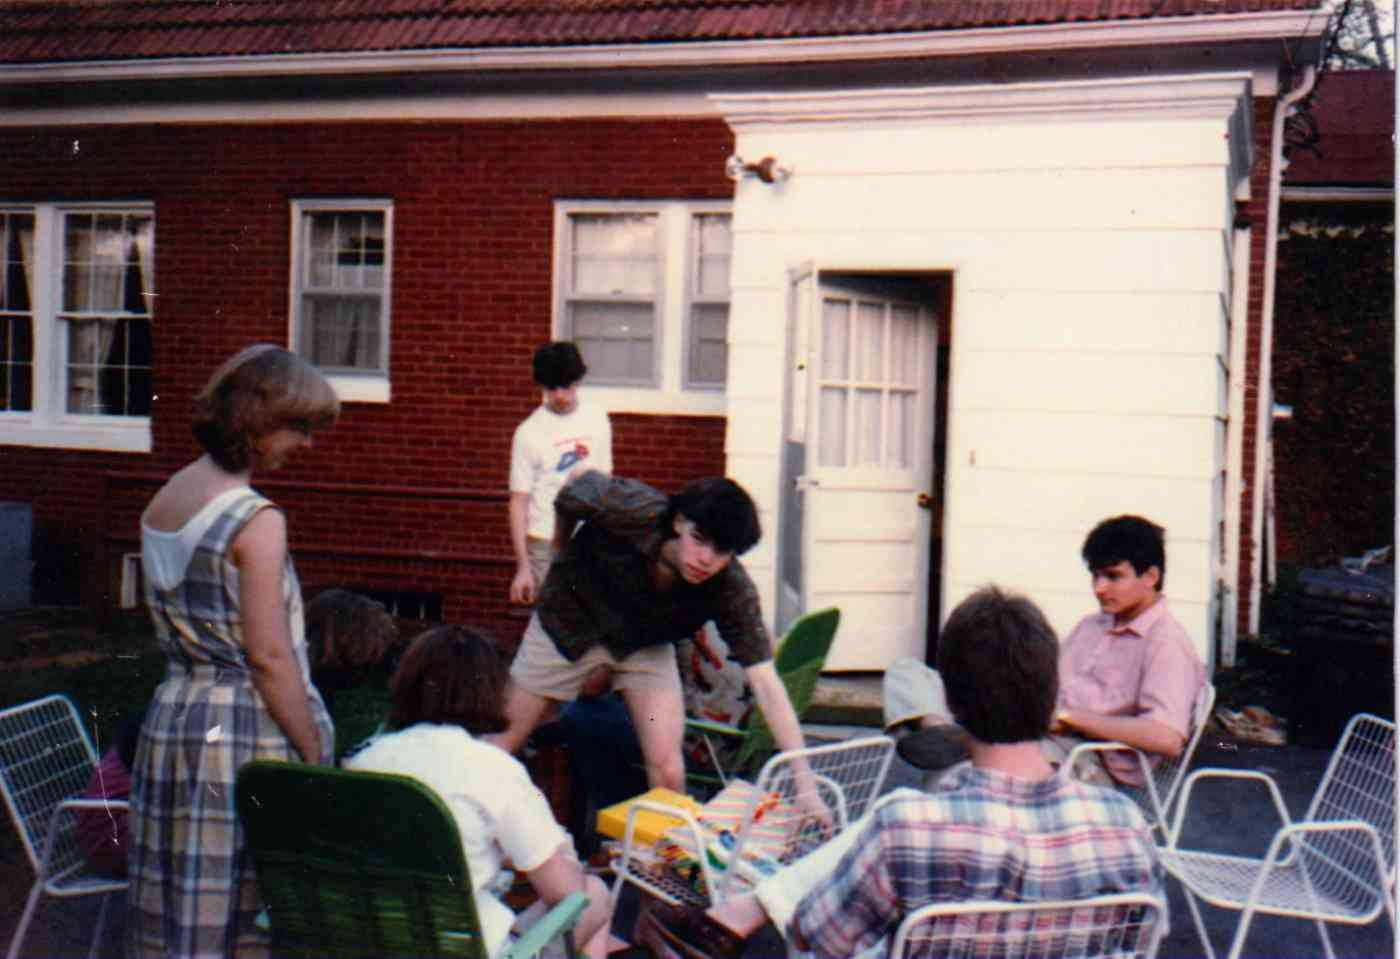 Bev's Birthday party, Chattanooga, Tennessee, 1985